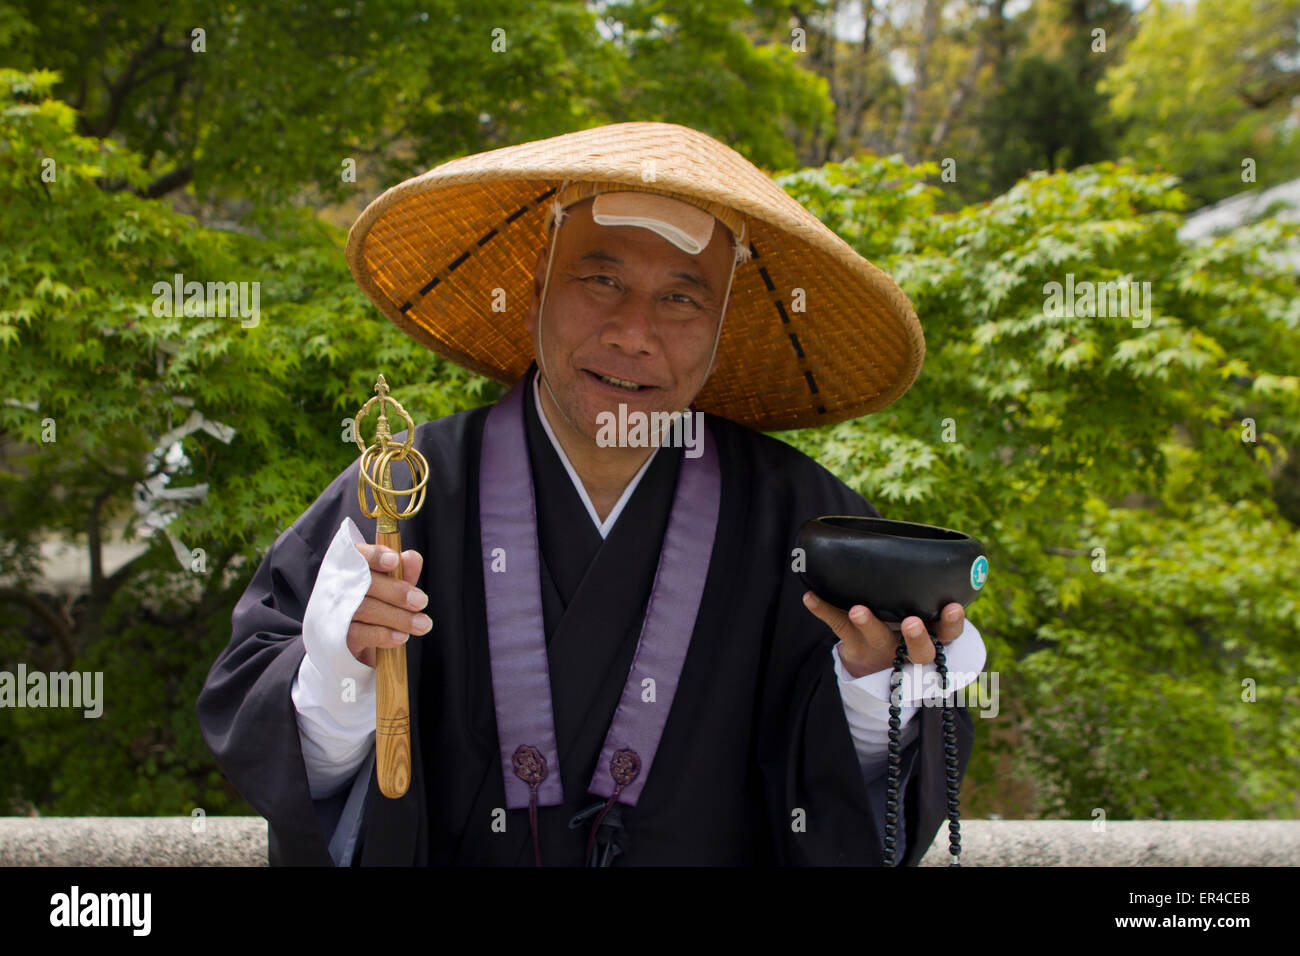 Japanese Buddhist monk collecting donations in Nara, Japan. - Stock Image